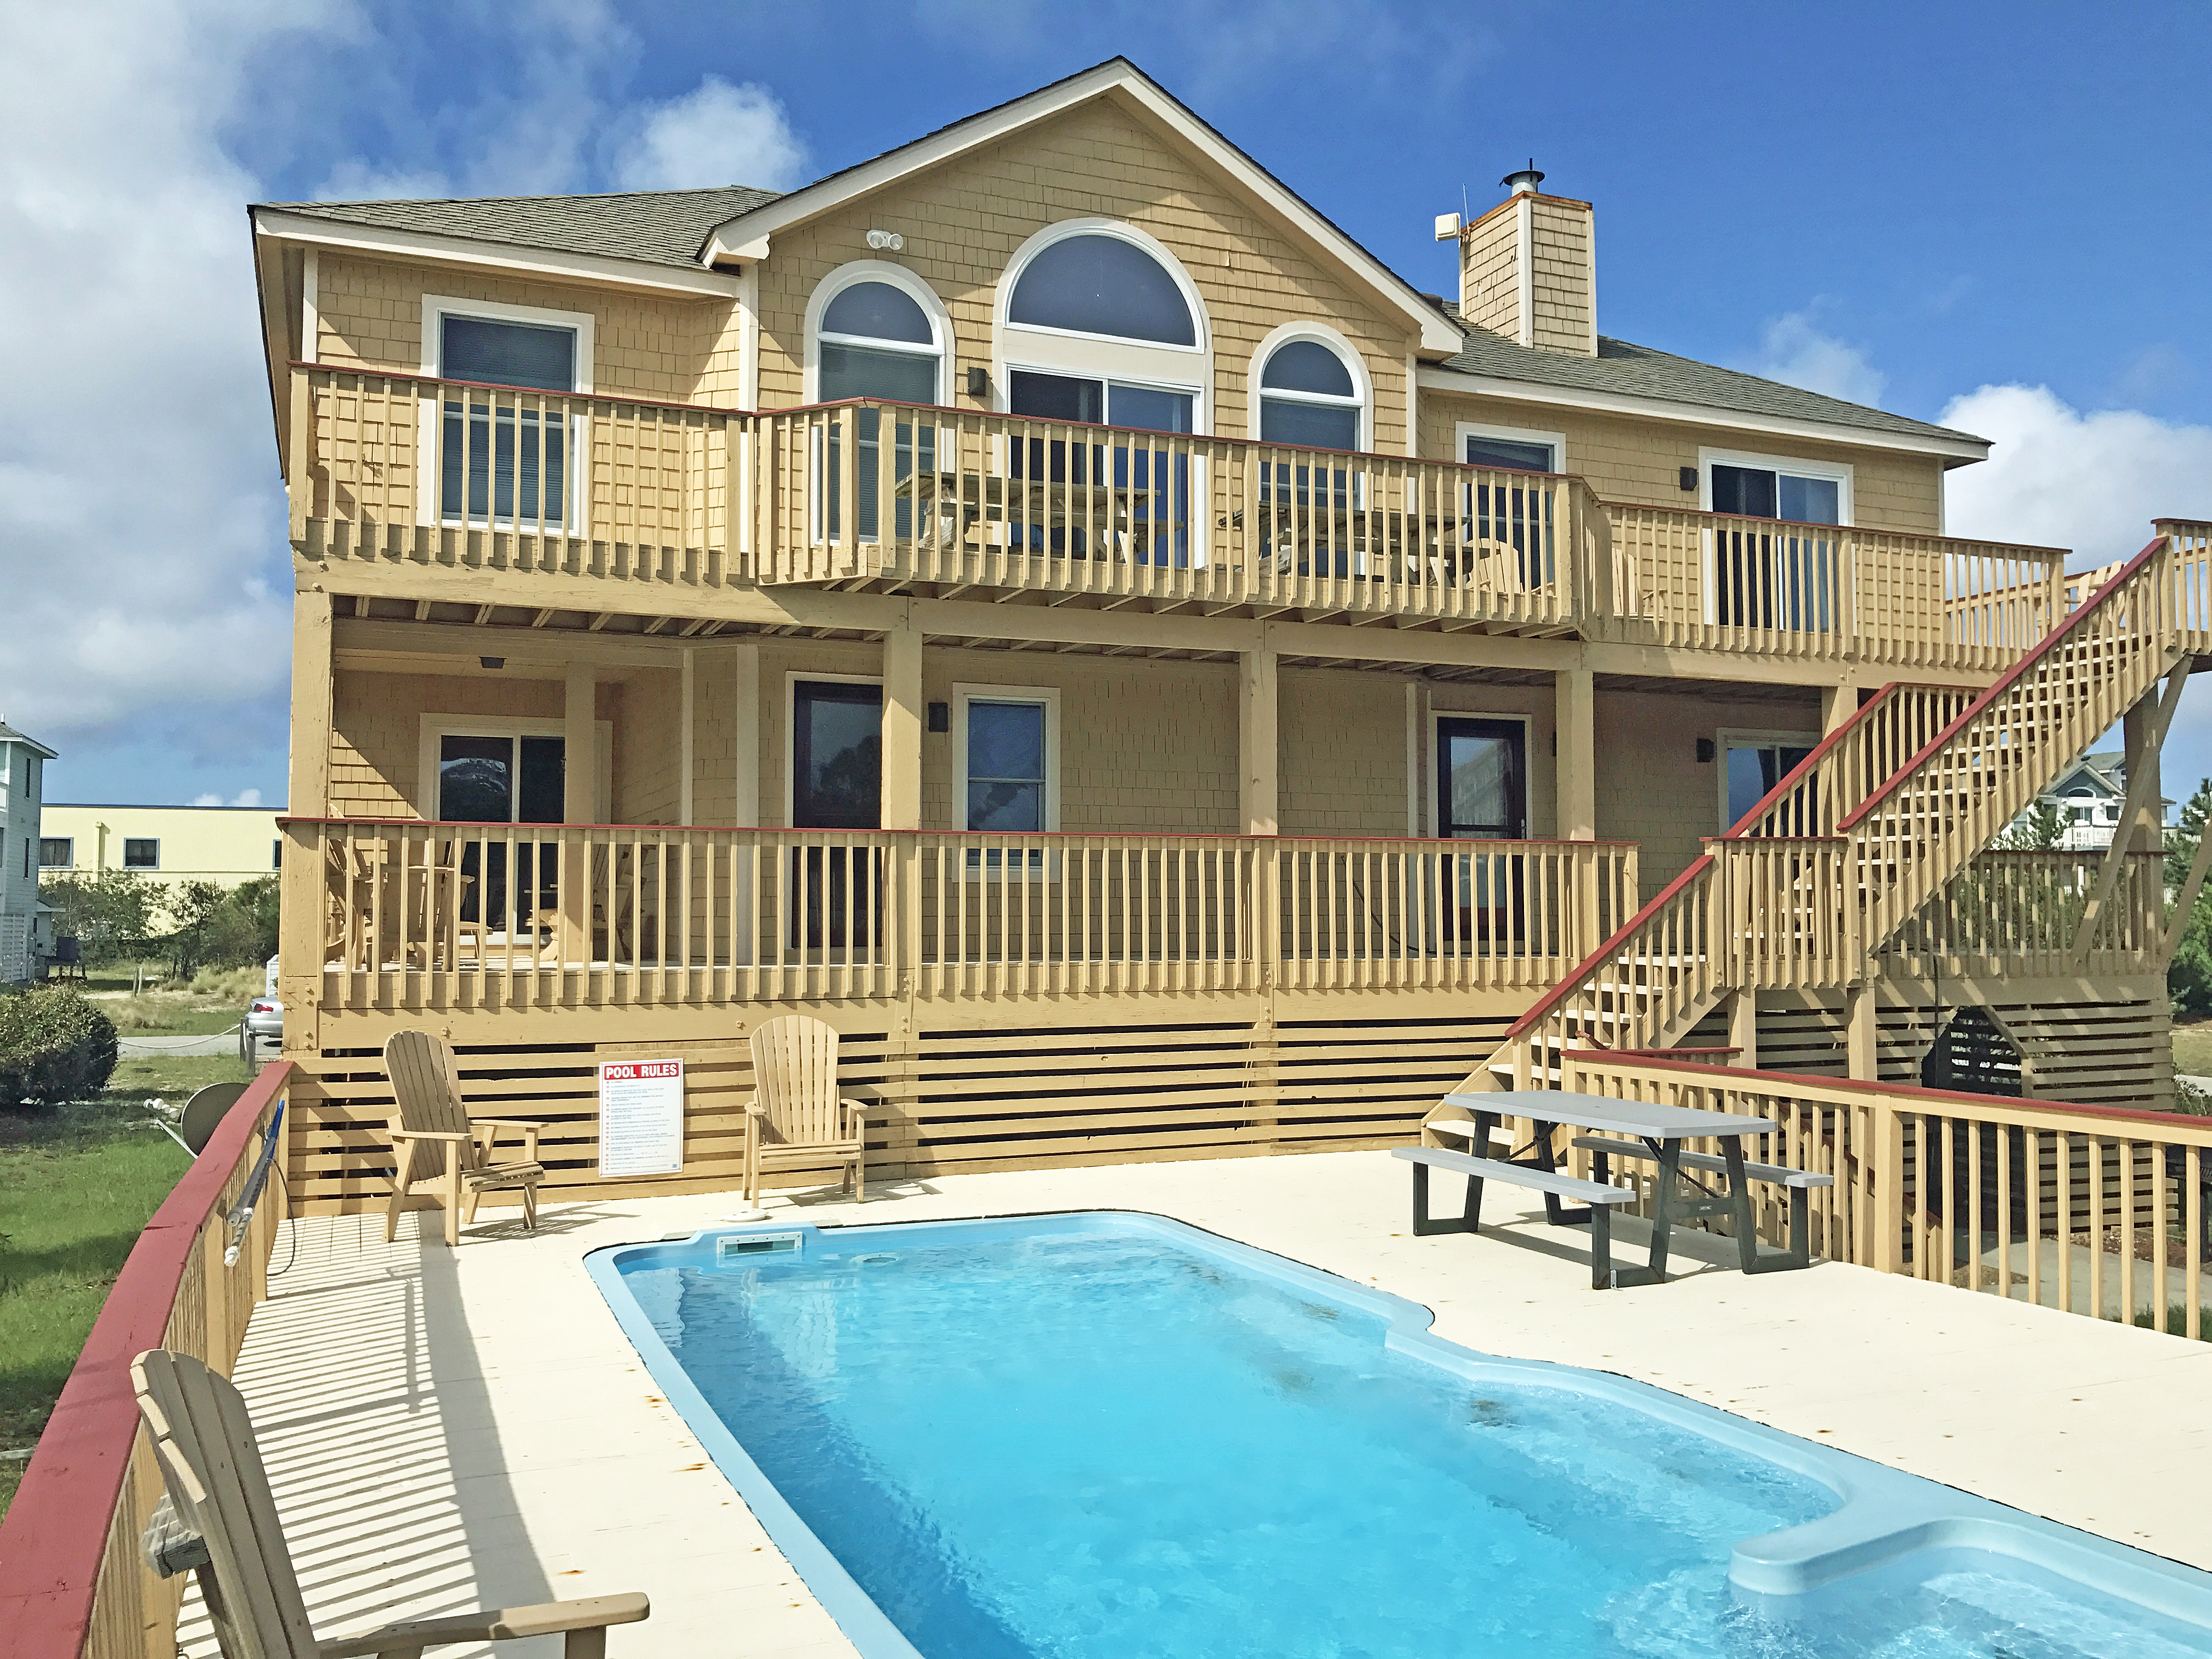 Wh811 About Time Carolina Shores Vacation Rentals